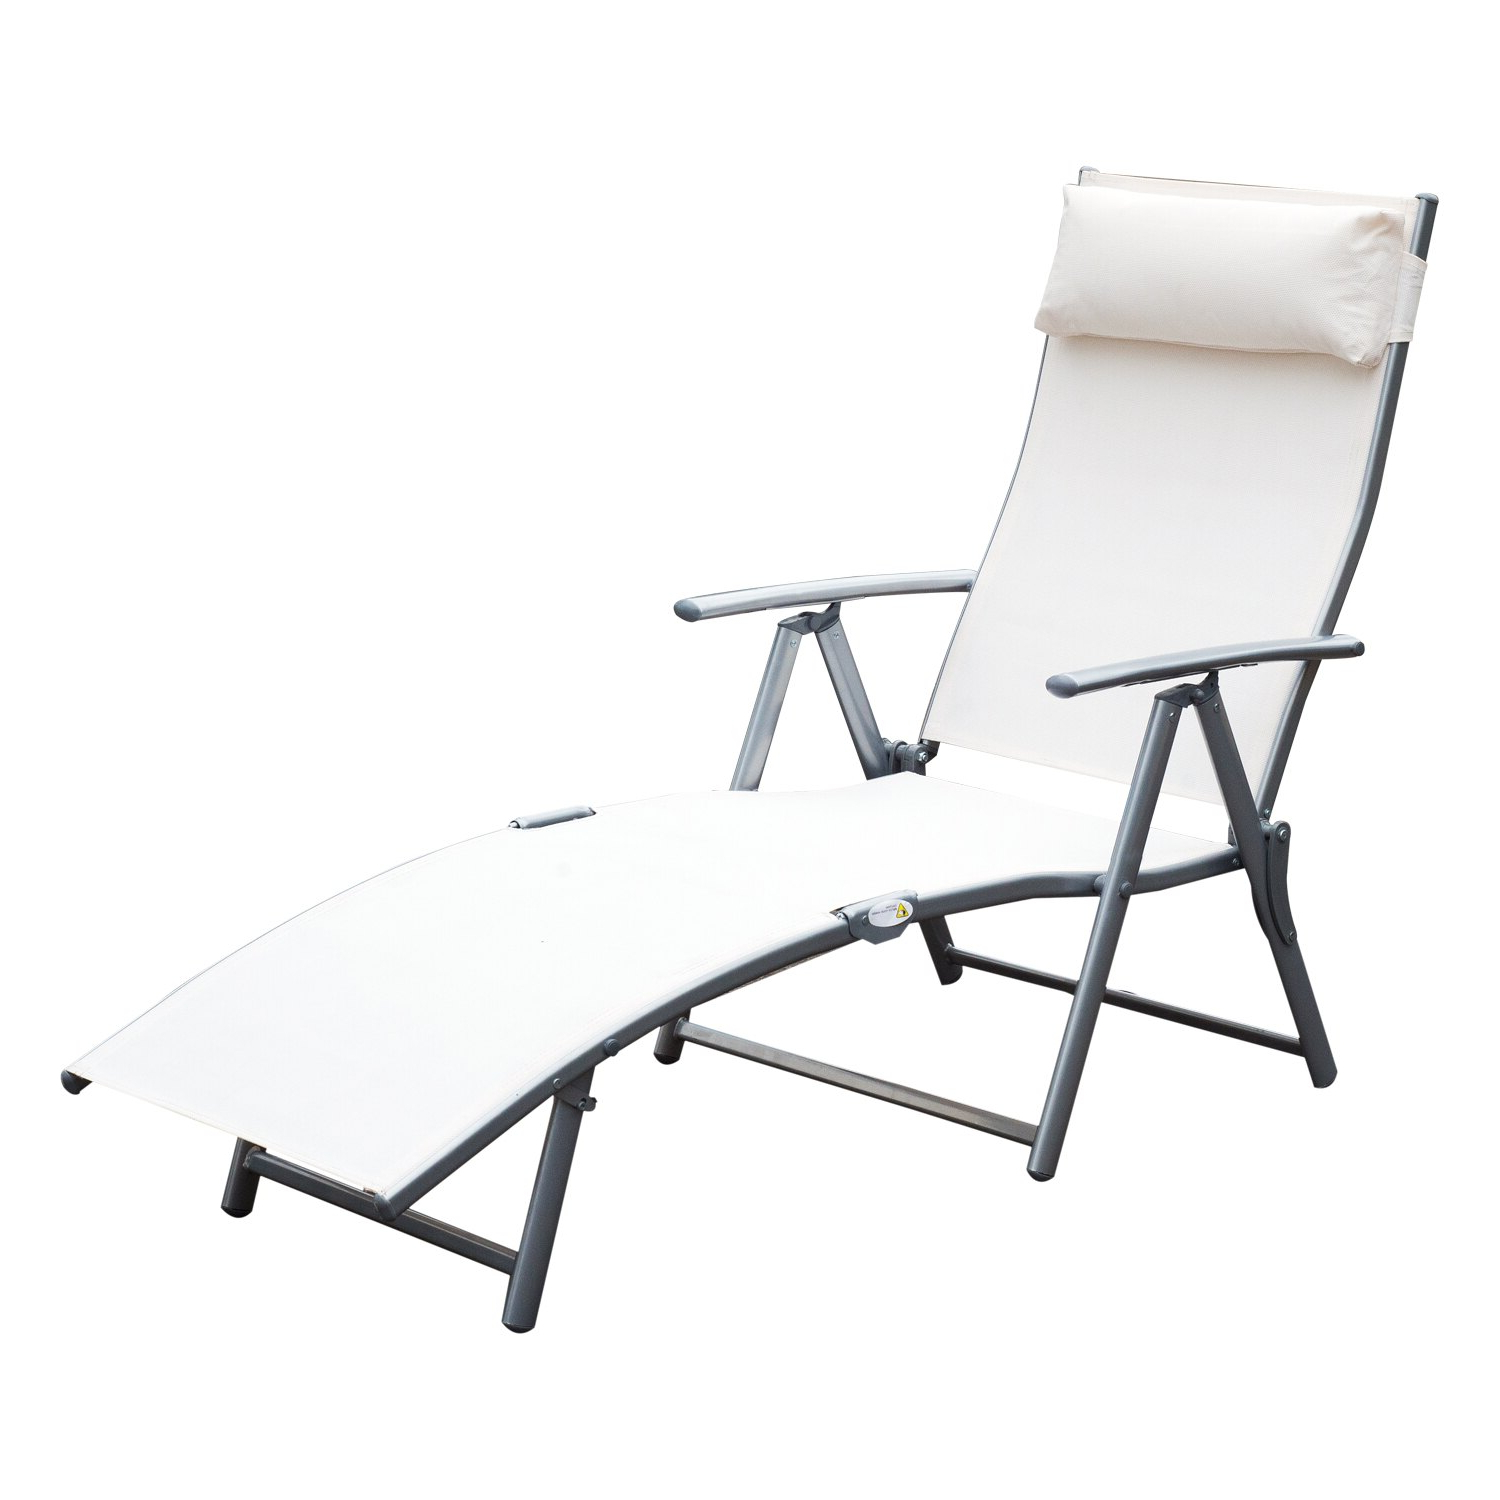 Reclining Sling Chaise Lounges Pertaining To Recent Outsunny Sling Fabric Patio Reclining Chaise Lounge Chair Folding 5  Position Adjustable Outdoor Deck With Cushion – Cream White (View 20 of 25)